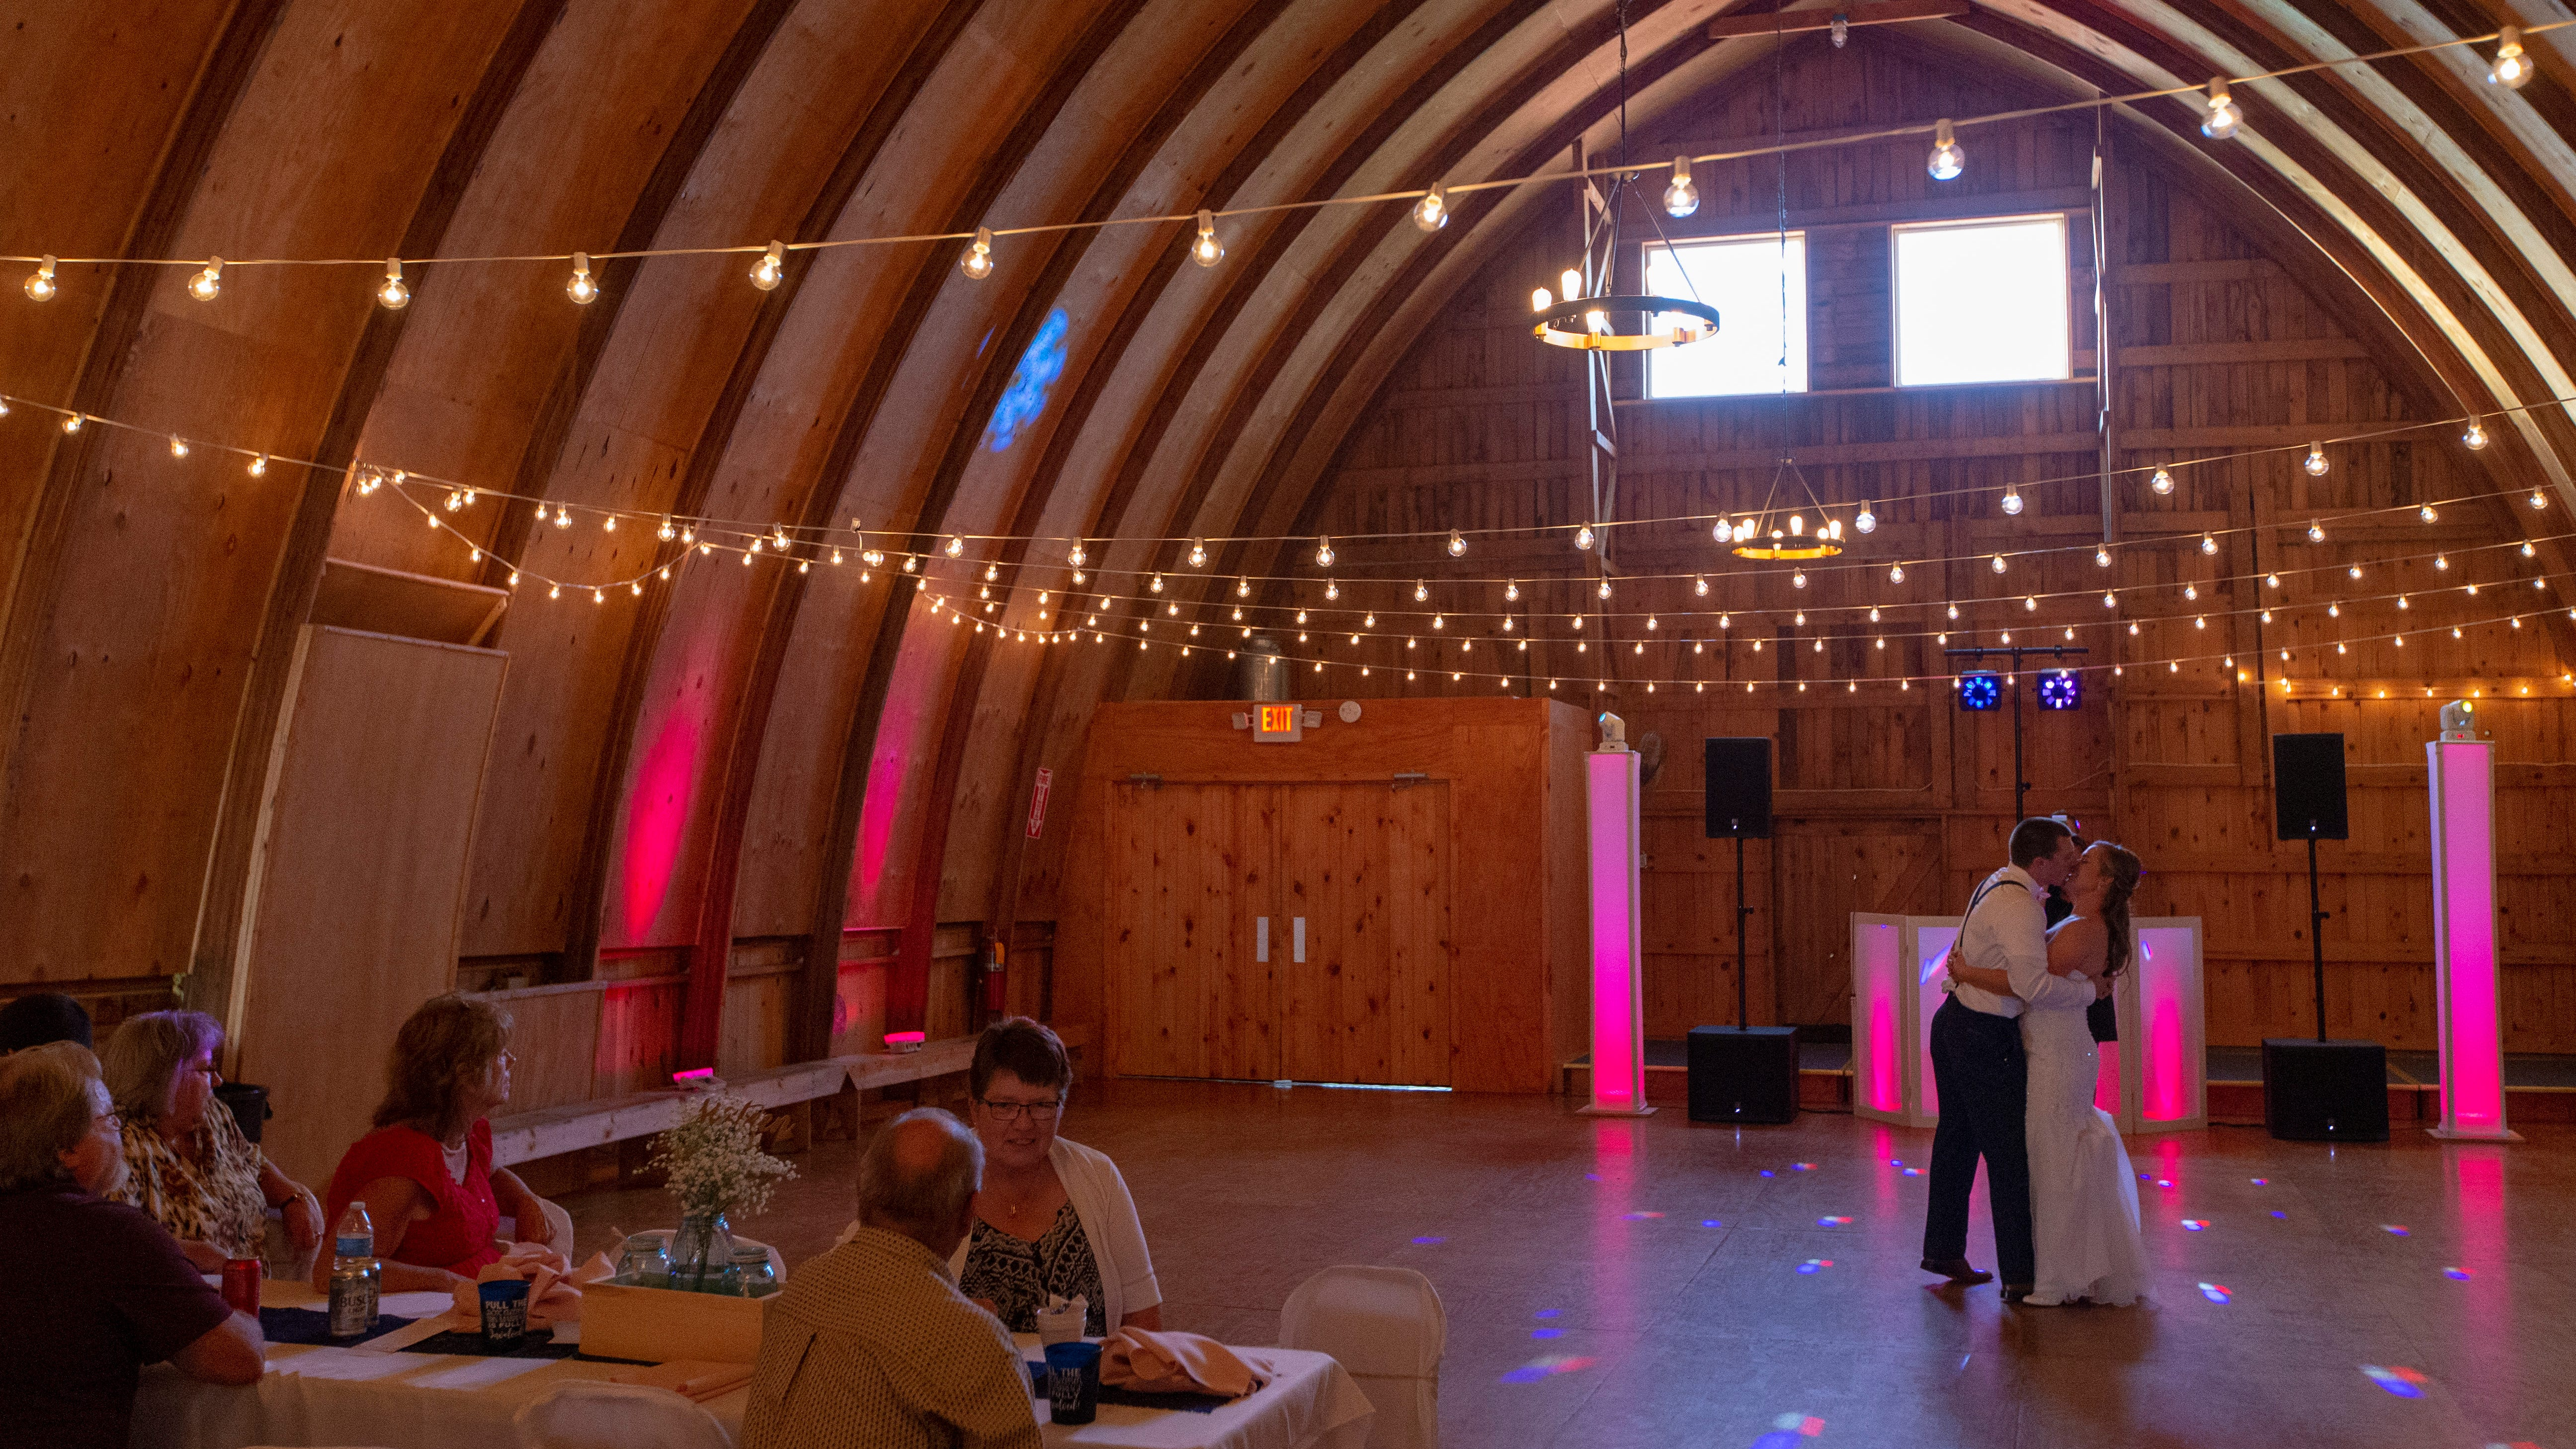 Wedding Barns In Wisconsin Are Subject To State Liquor Laws Ag Says